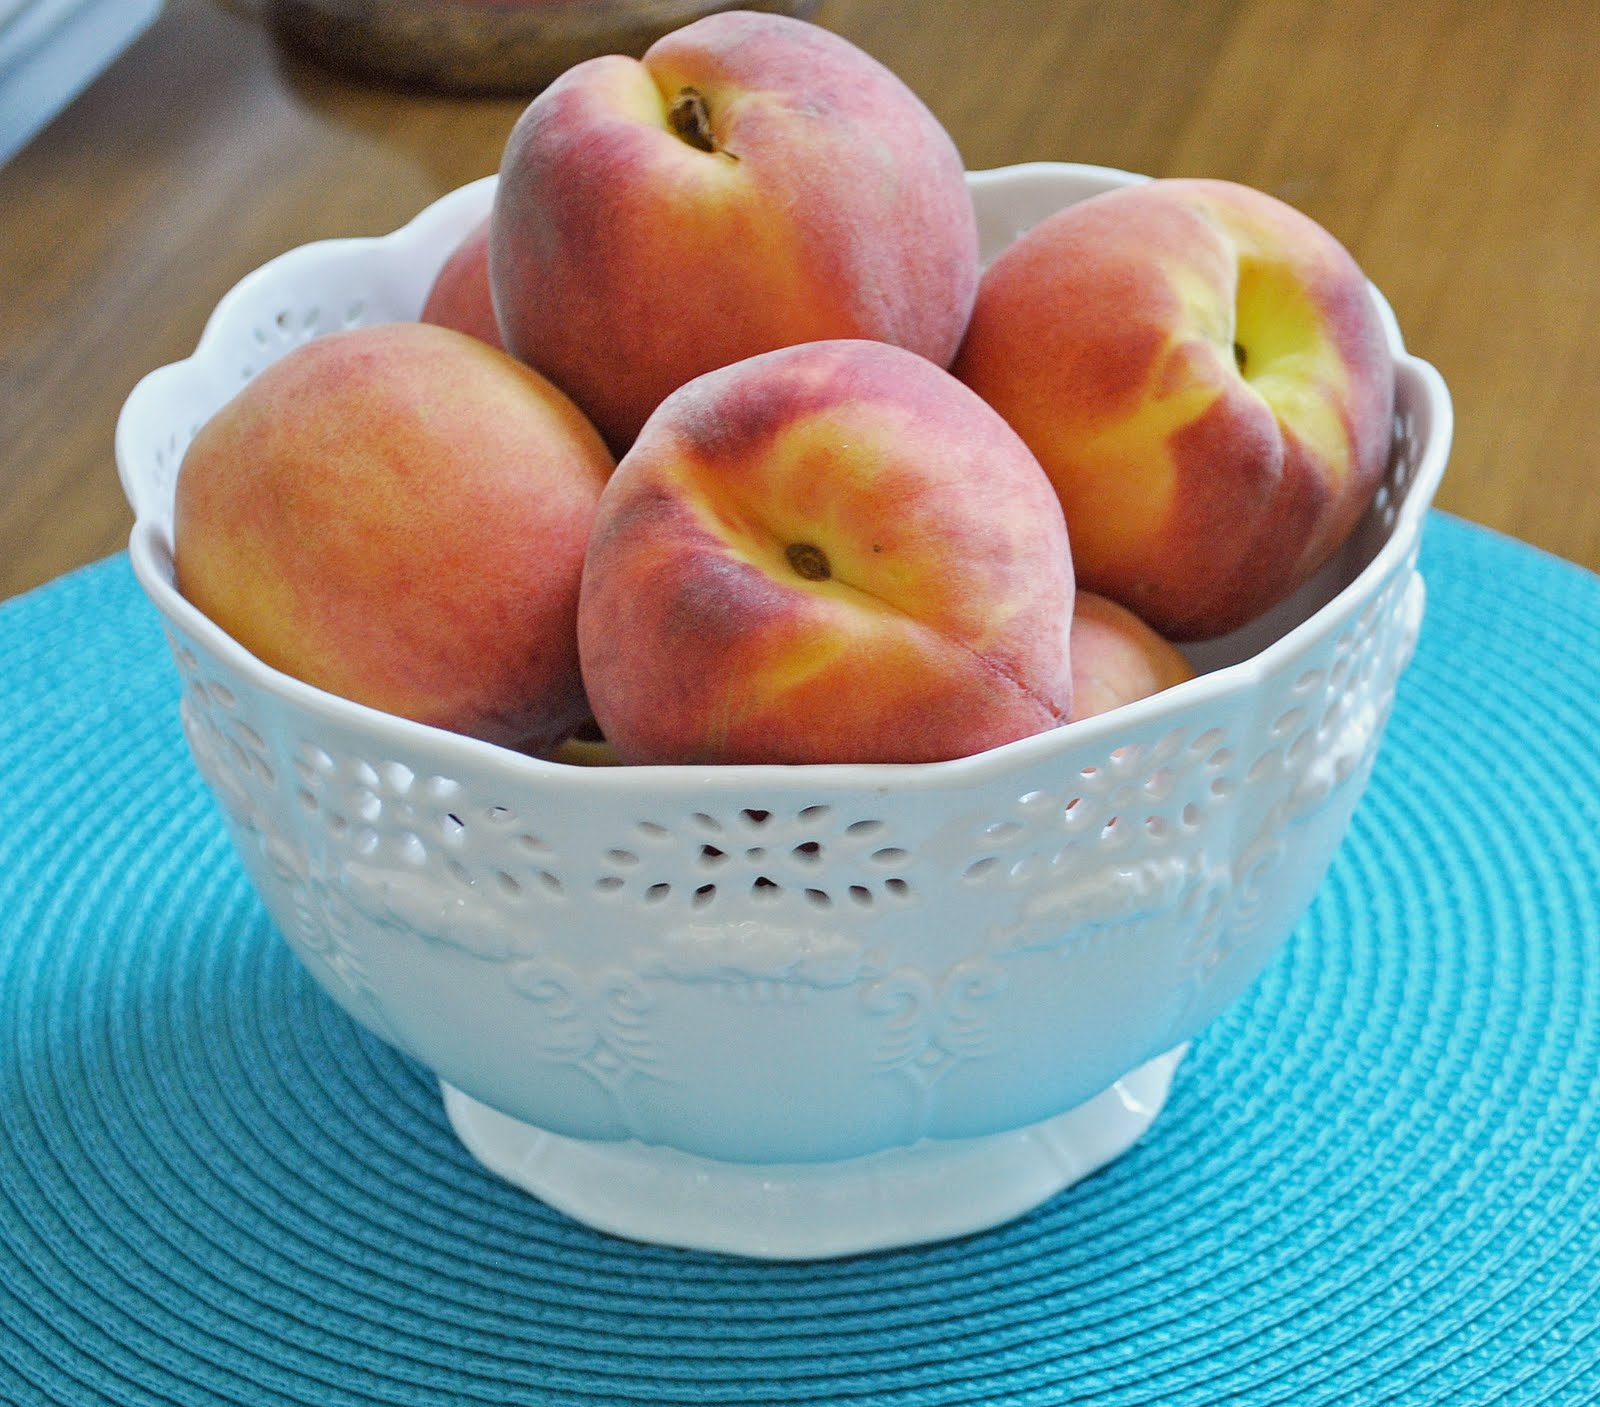 peach and its core analysis peach d h lawrence A peach and its core--an analysis of peach by dh lawrence1100012705叶子杰 what will you think of, when you eat a fruit, like a peach i think many people's answer would be nothing at all.